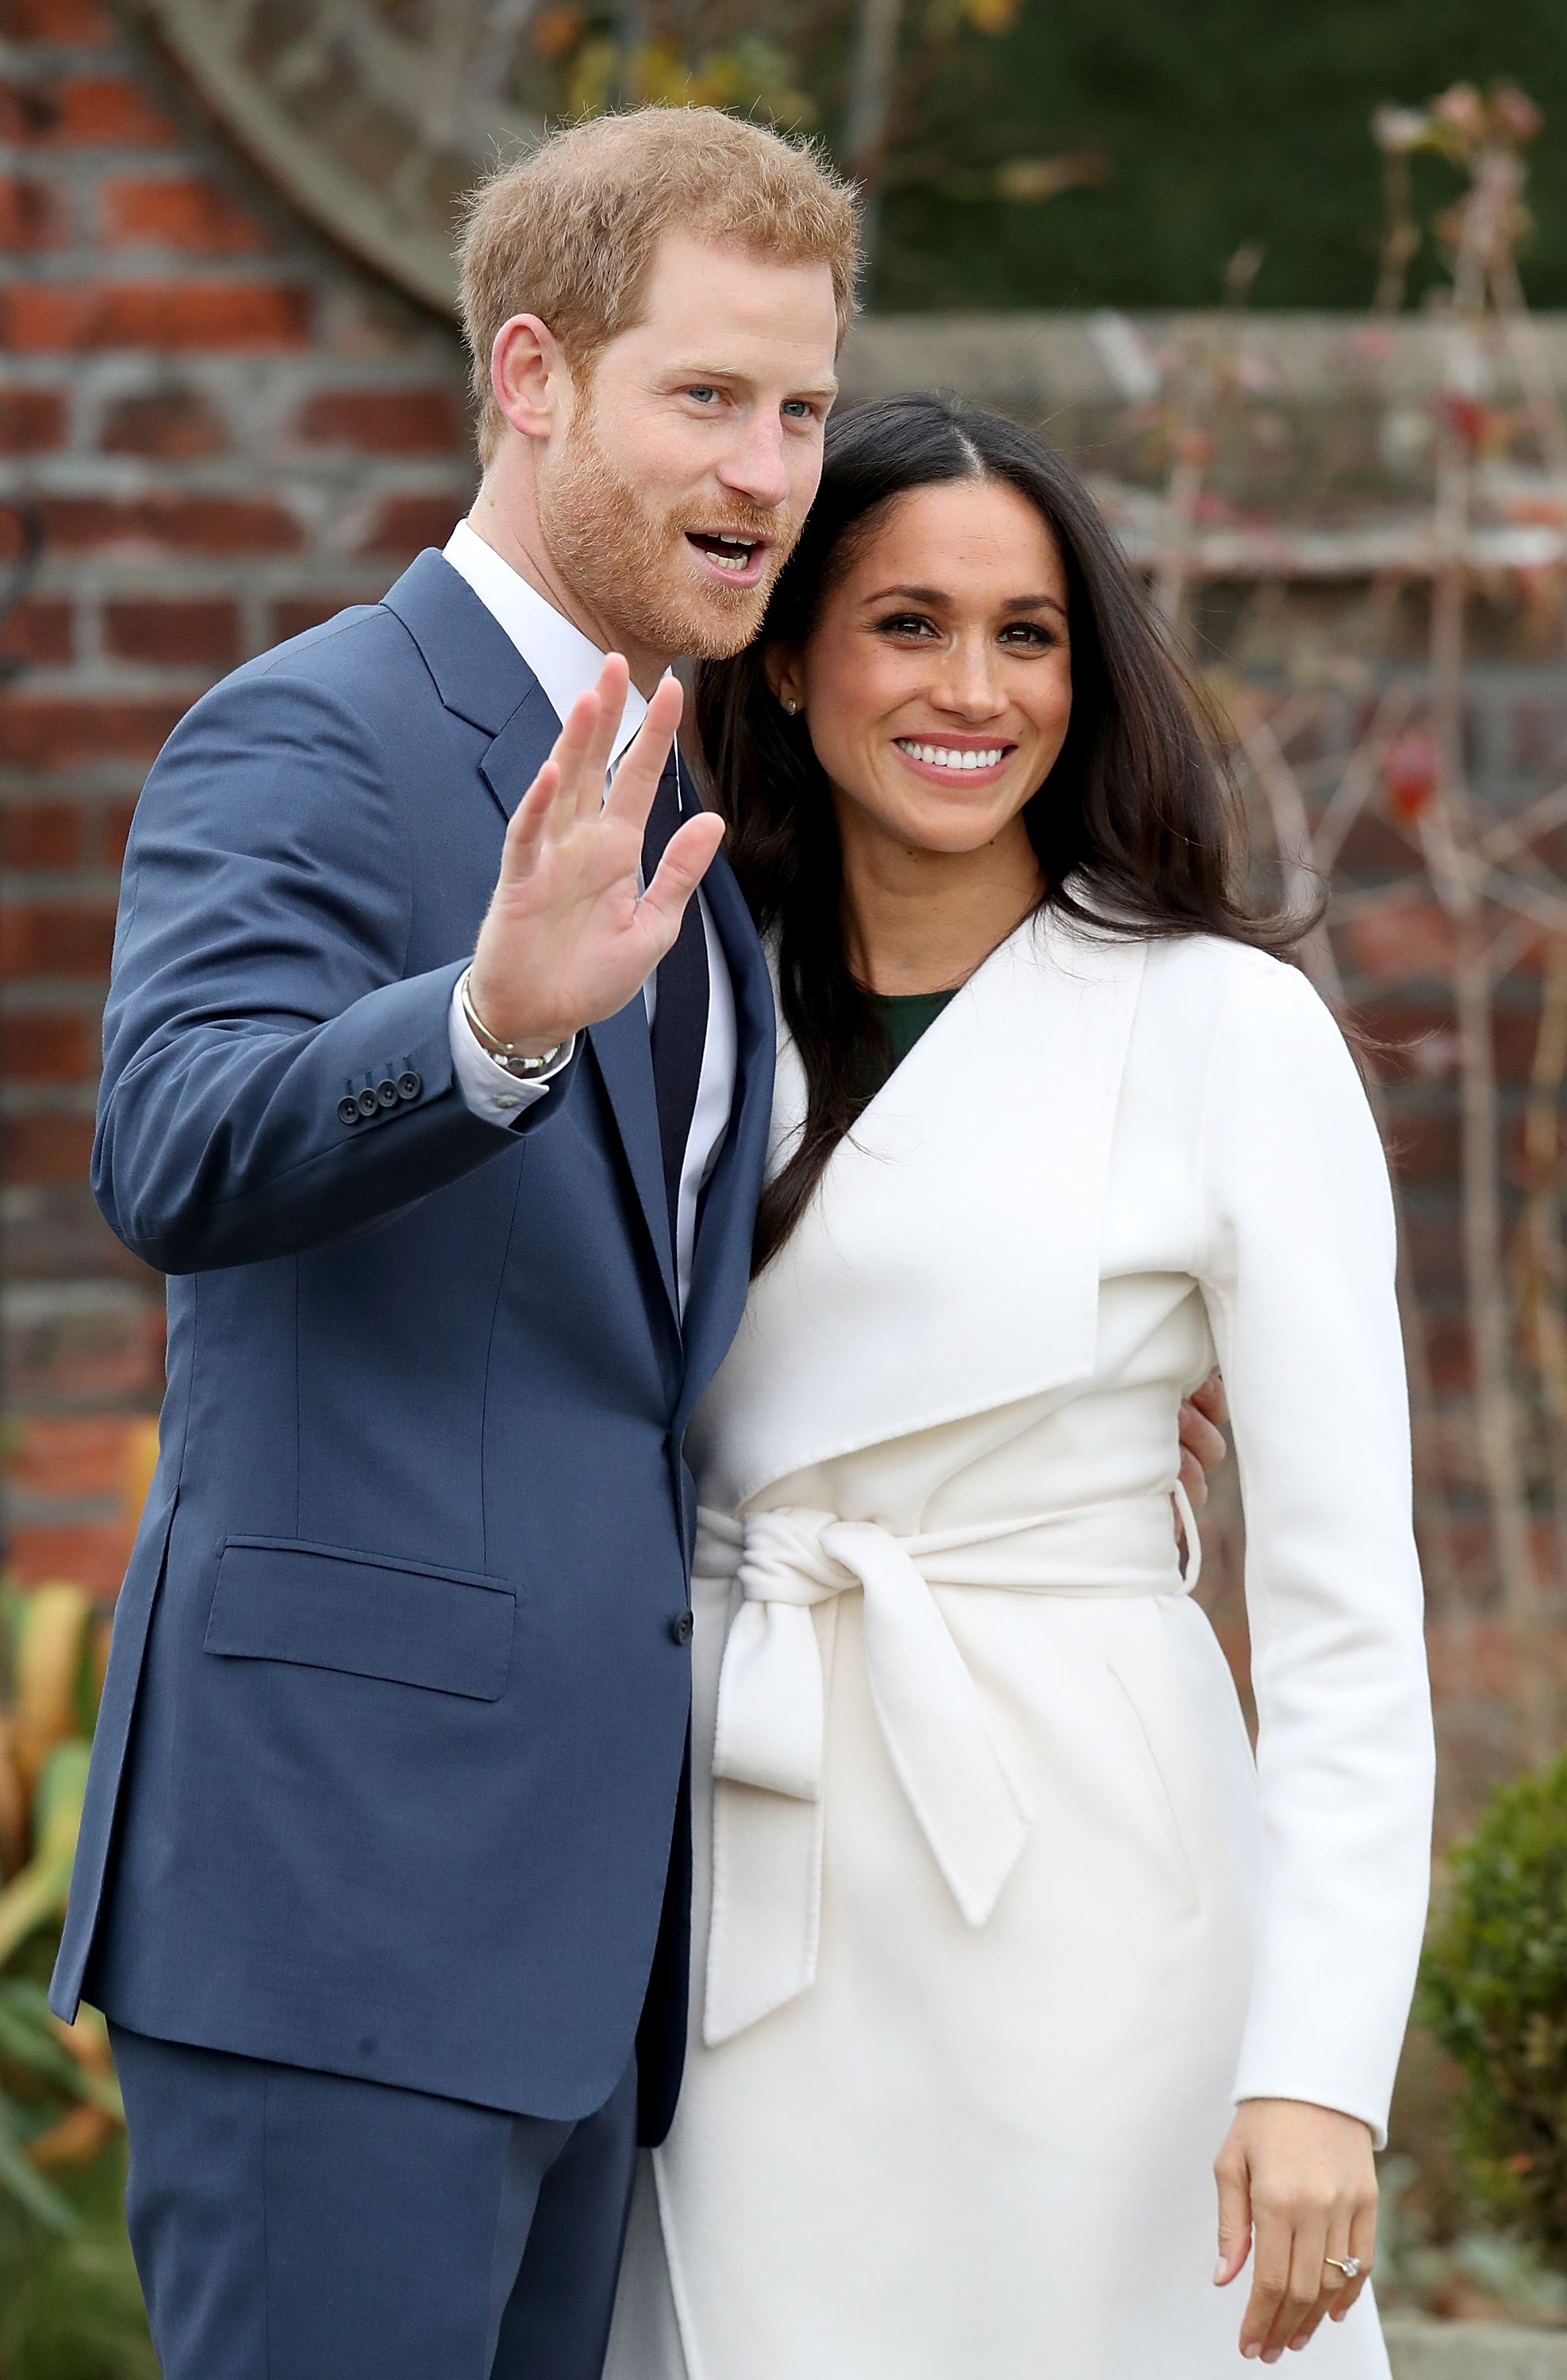 Prince Harry and Meghan Markle during an official photocall to announce their engagement on November 27, 2017, in London, England. | Source: Getty Images